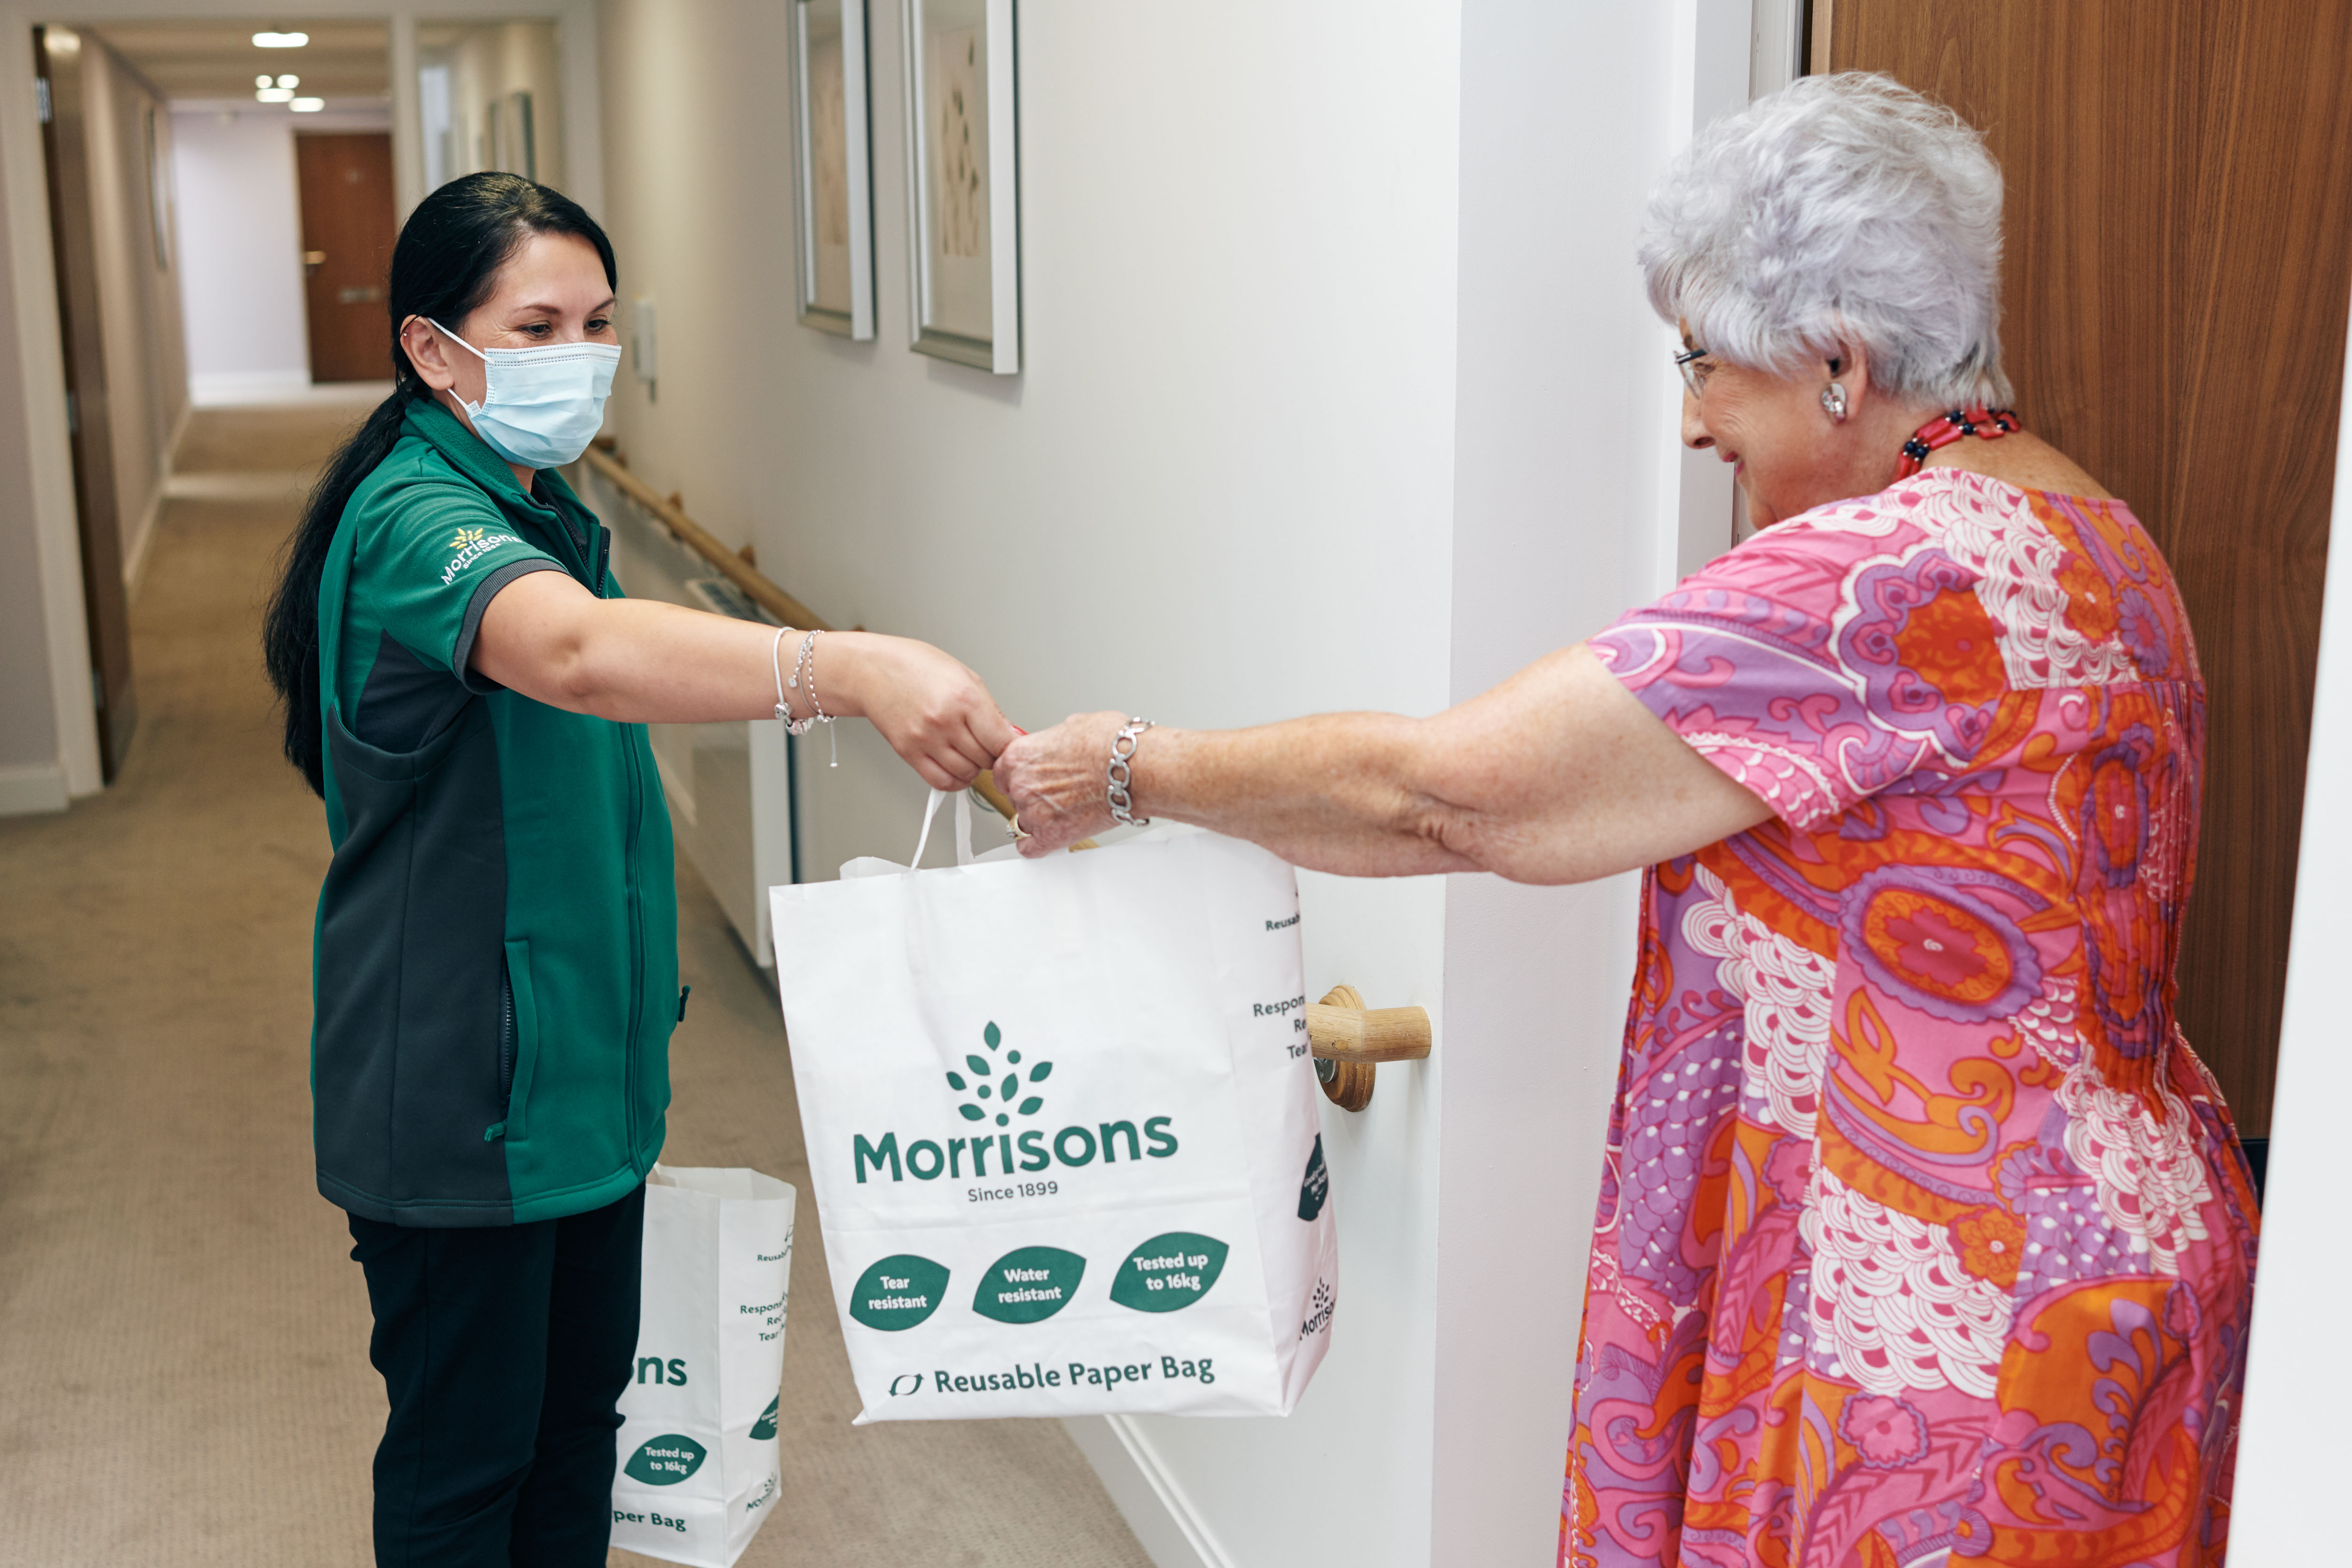 Morrisons provides doorstep deliveries to McCarthy & Stone's nationwide retirement communities